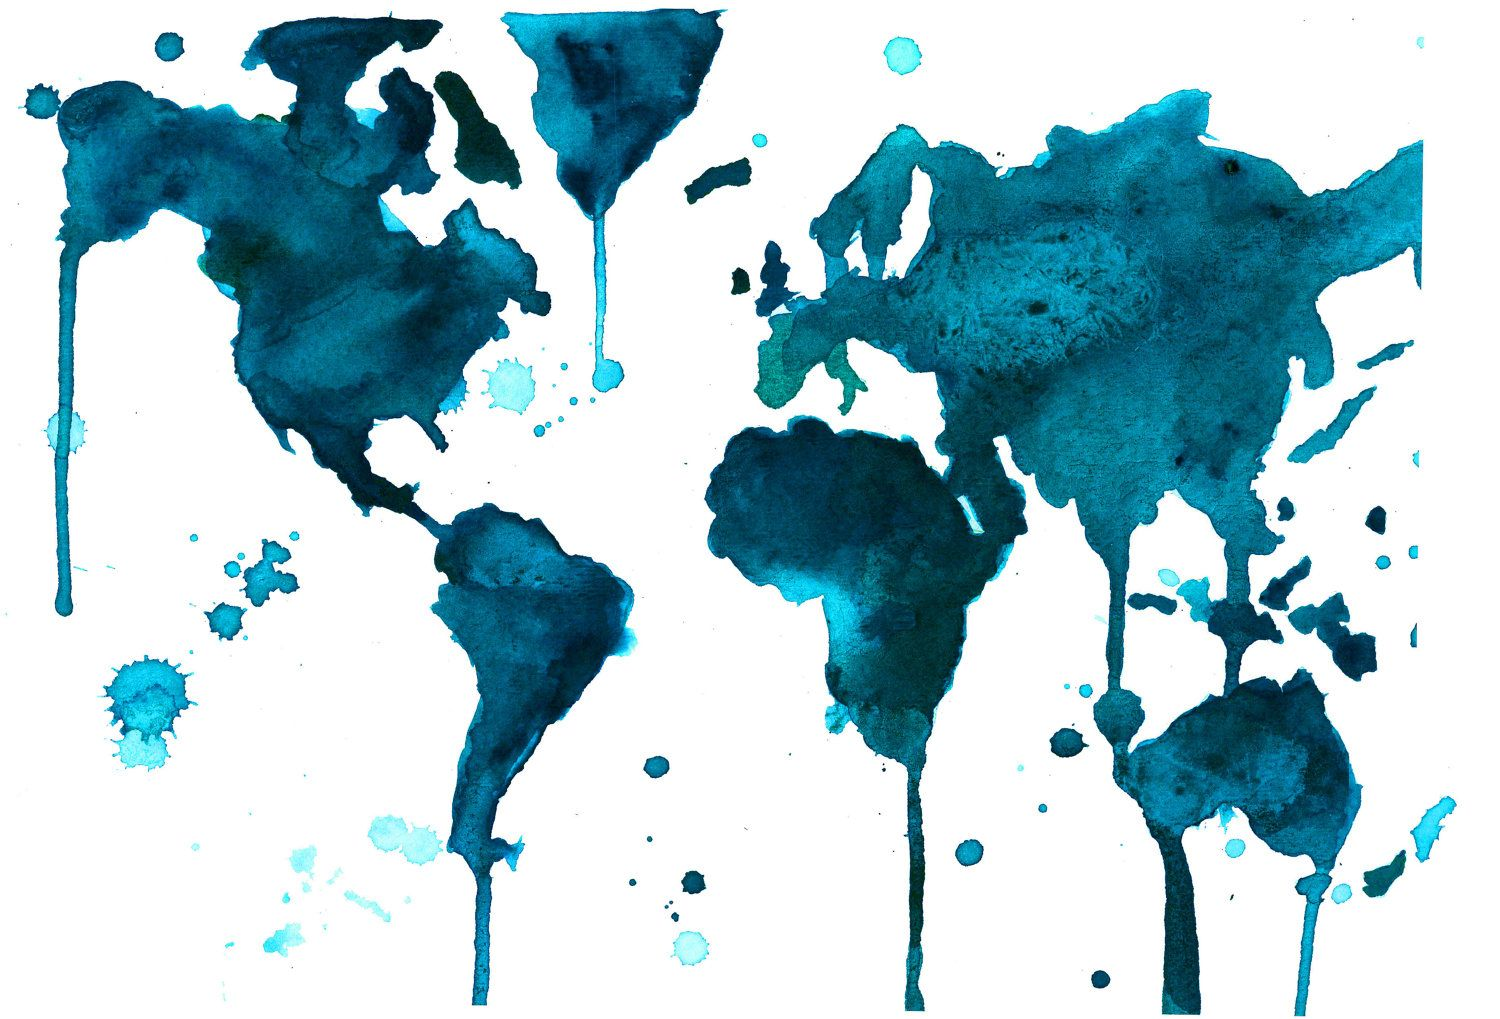 Watercolor world map painting by jessica durrant a teal world print watercolor map watercolor world map painting by jessica durrant a teal world print gumiabroncs Choice Image